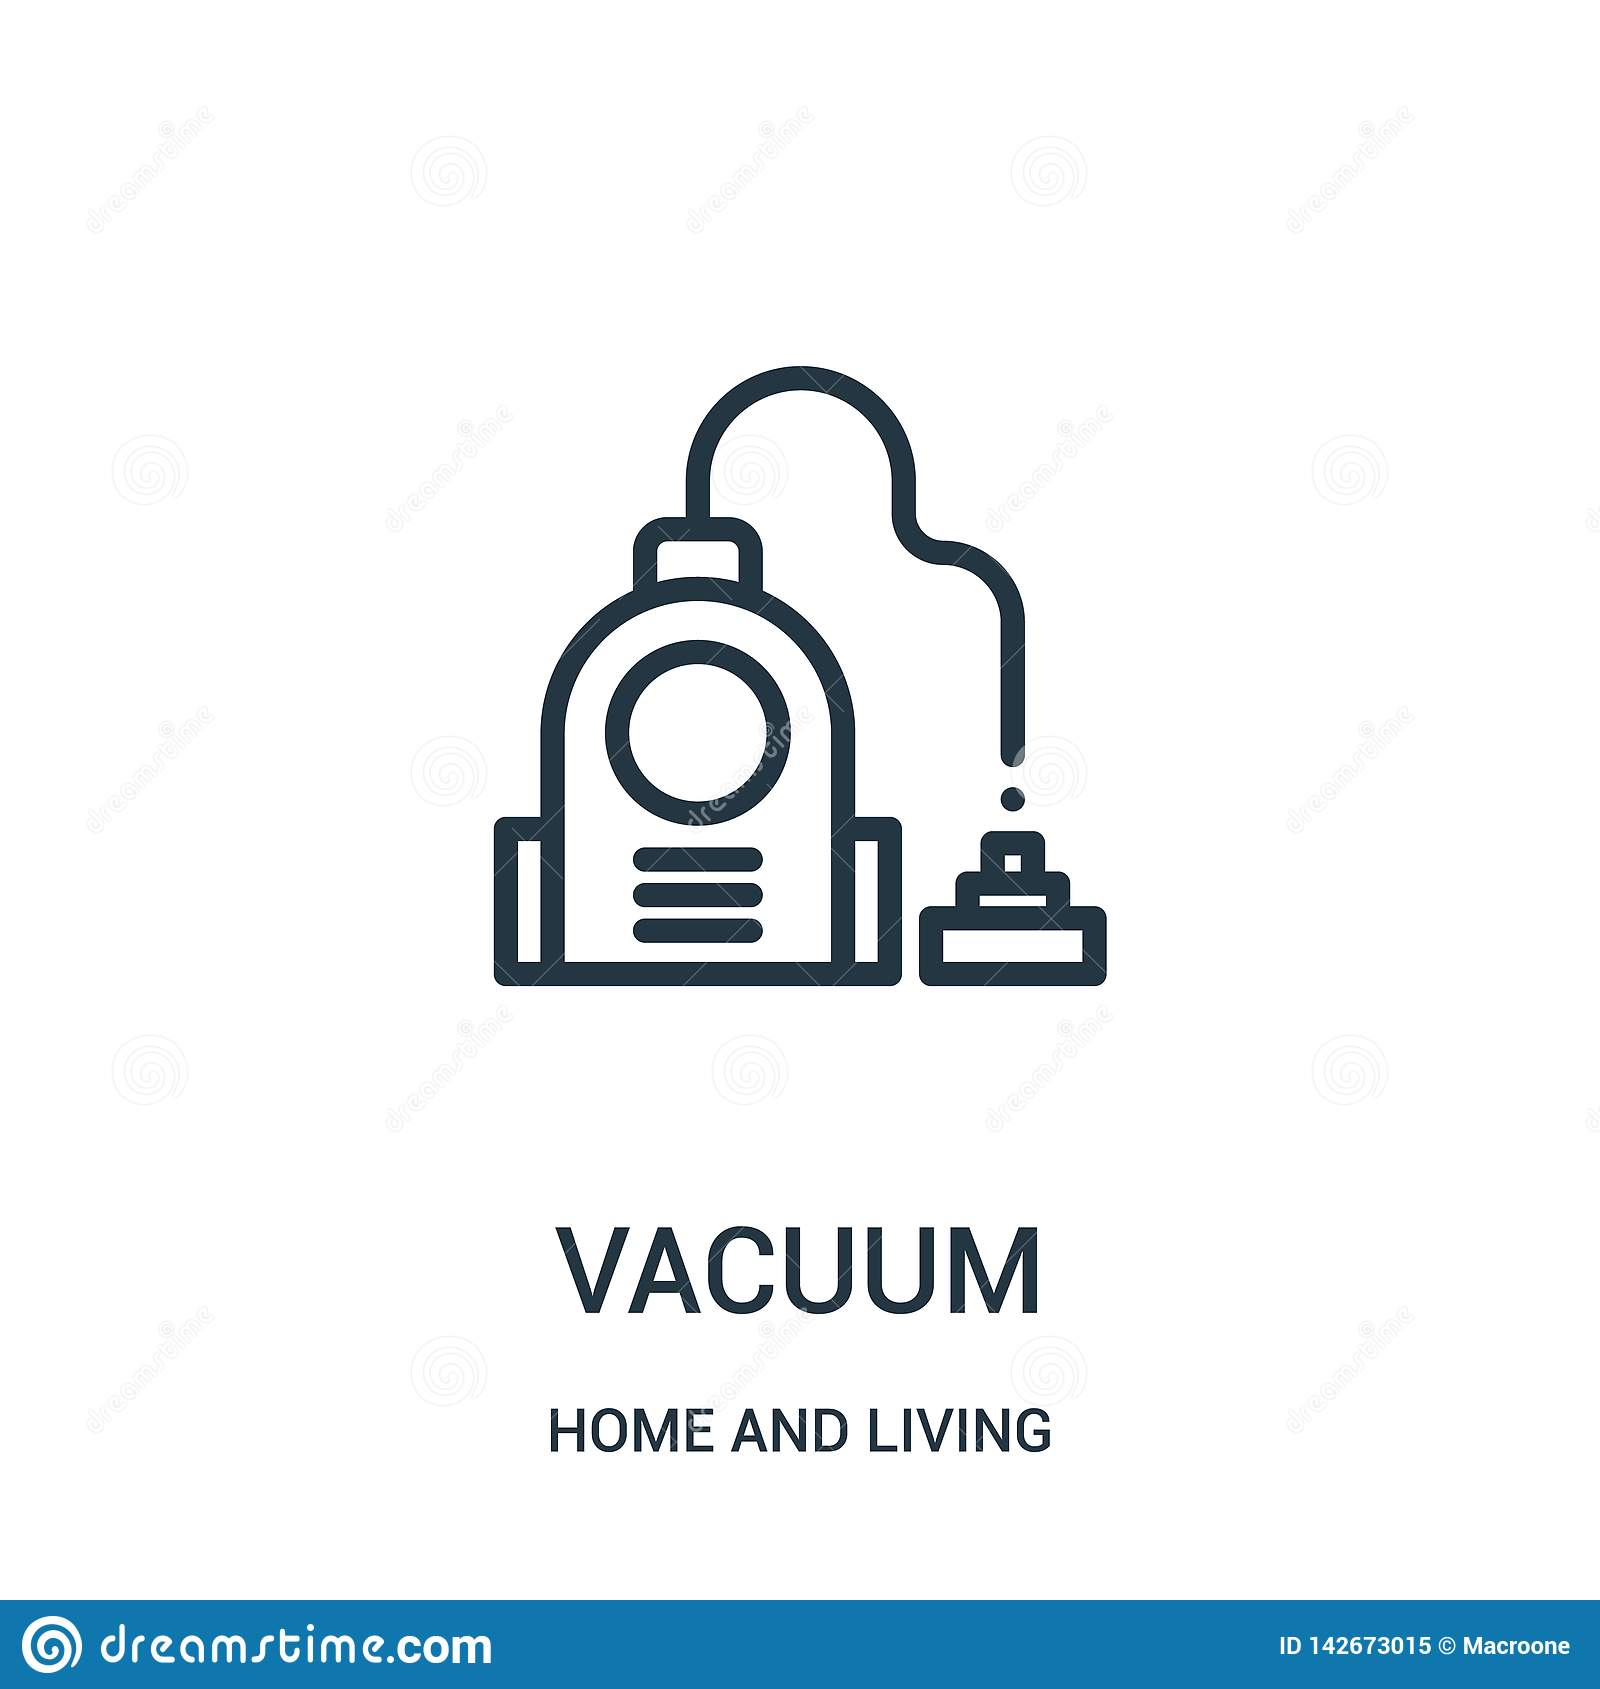 vacuum icon vector from home and living collection. Thin line vacuum outline icon vector illustration. Linear symbol for use on